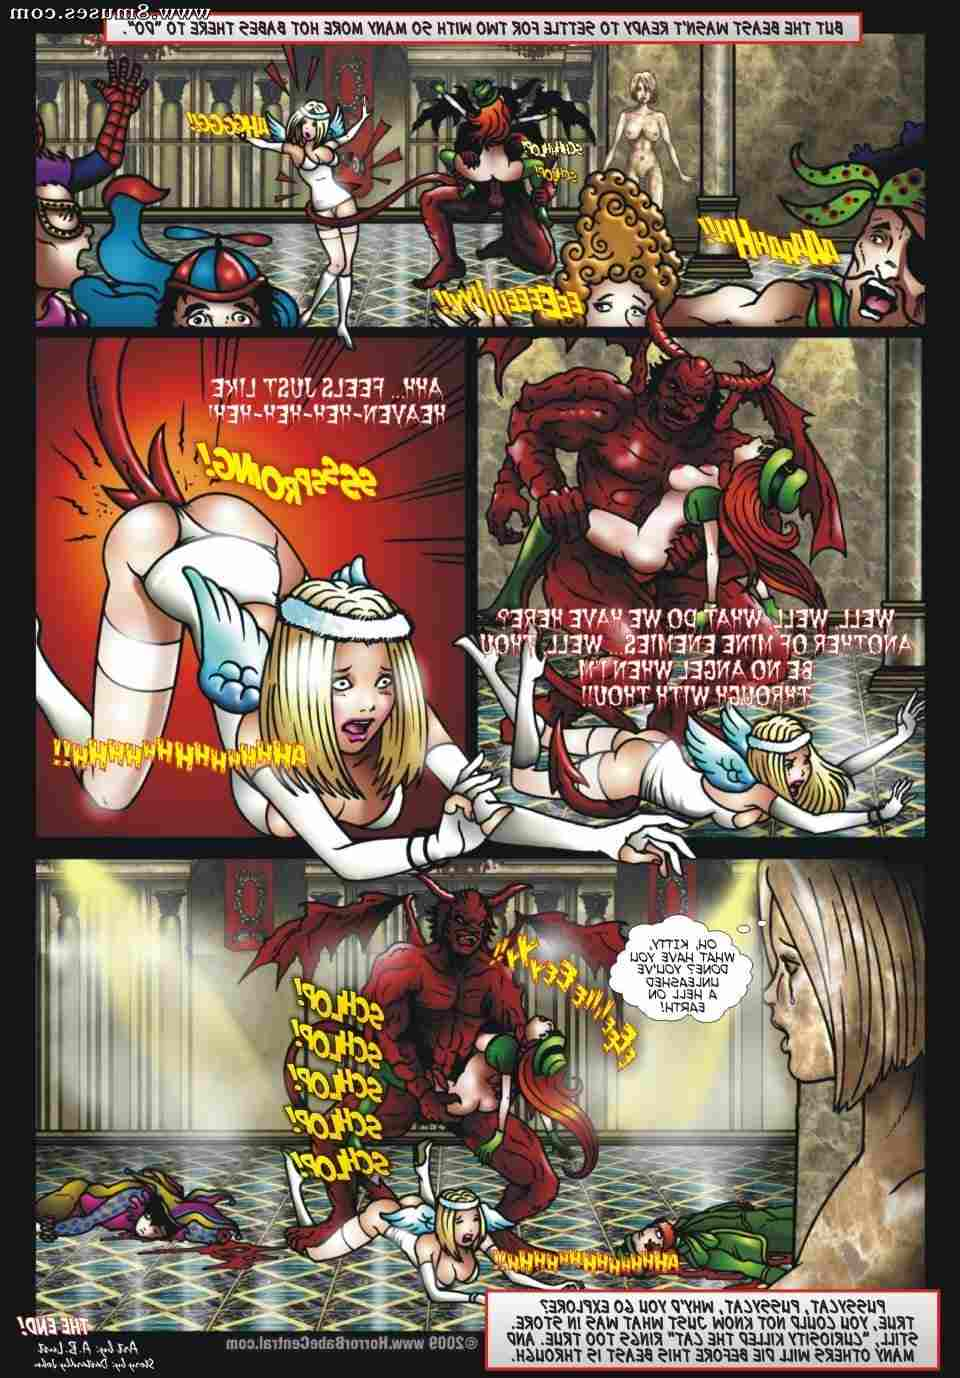 Central-Comics/Horror-Babe-Central/Fable-of-Fright Fable_of_Fright__8muses_-_Sex_and_Porn_Comics_101.jpg